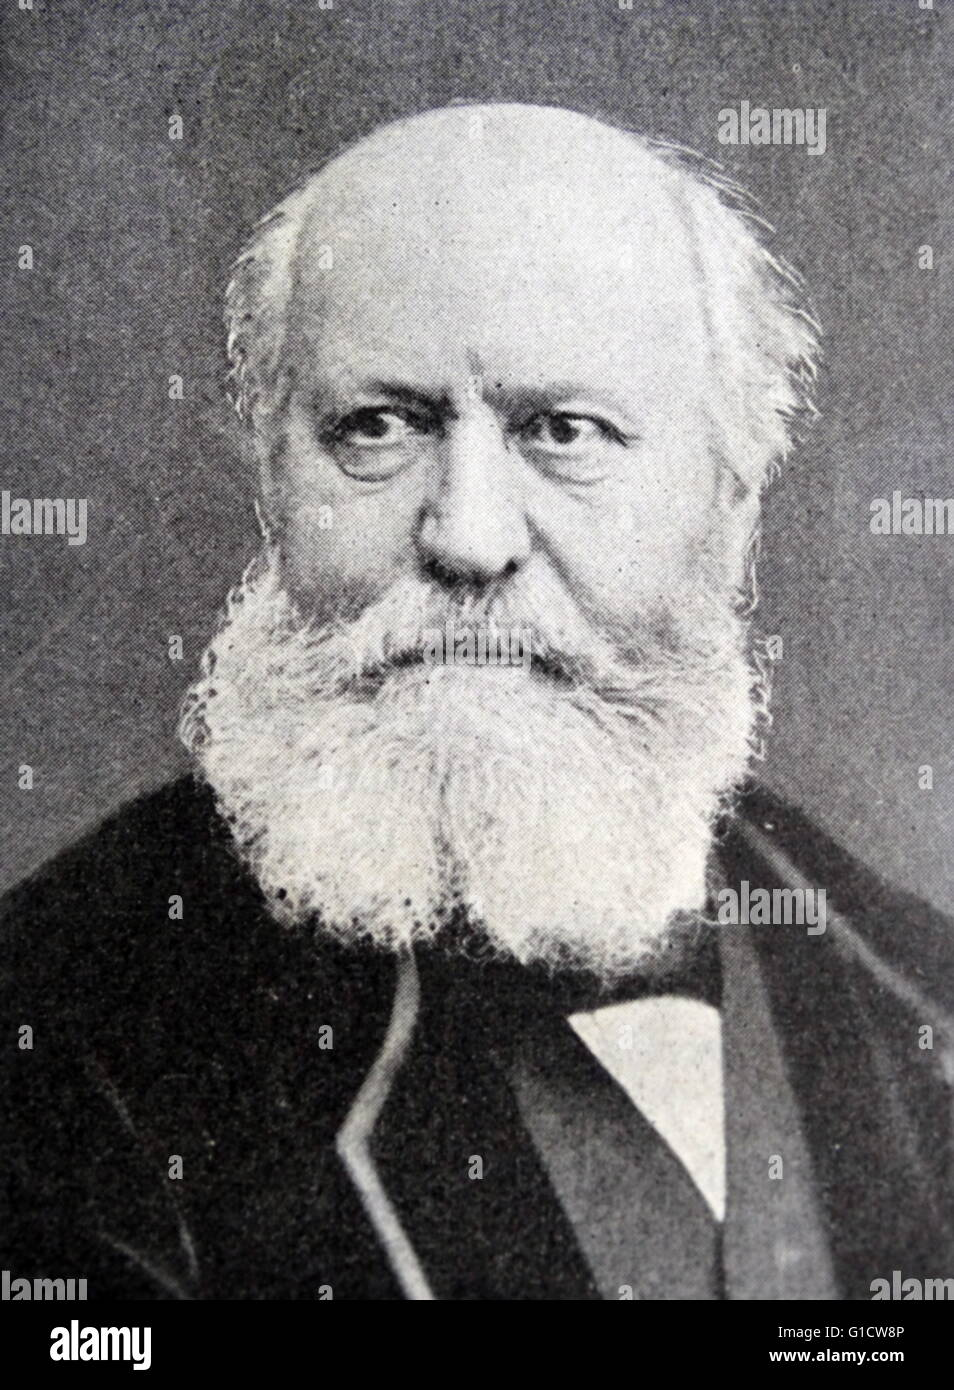 Photographic portrait of Charles-François Gounod (1818-1893) a French composer, known for his Ave Maria, based - Stock Image